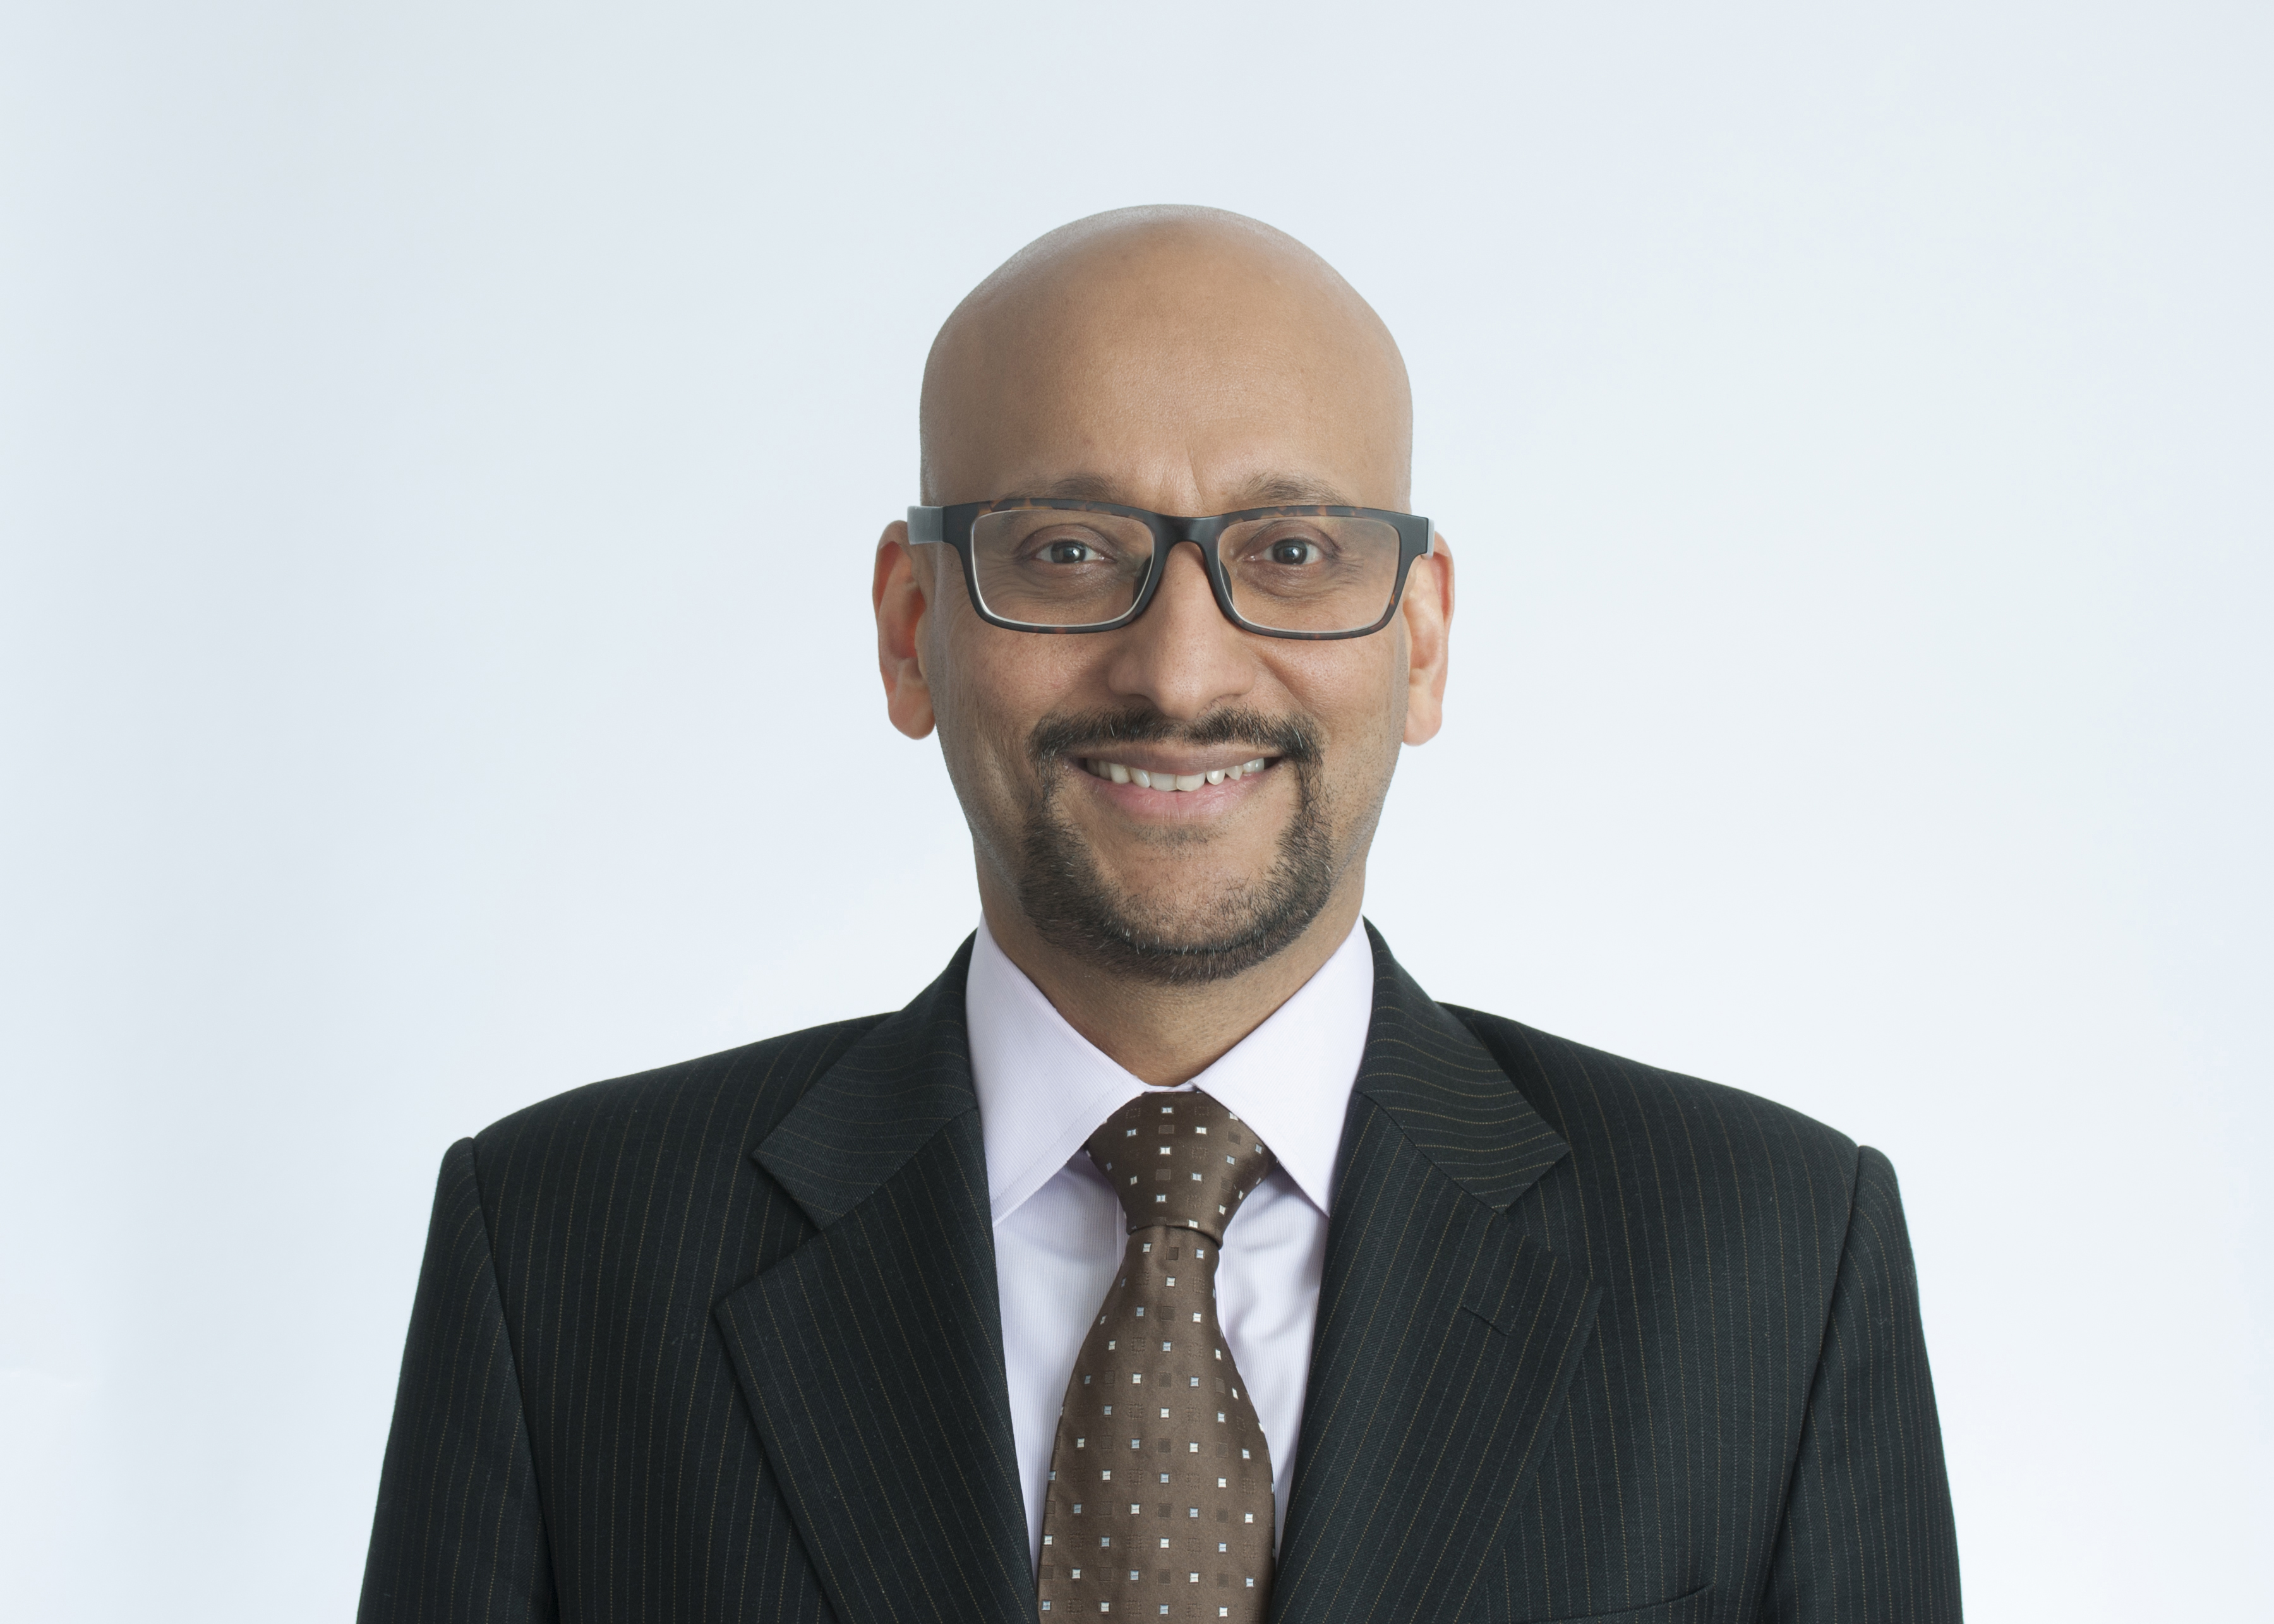 Rahul Samant Executive Headshot